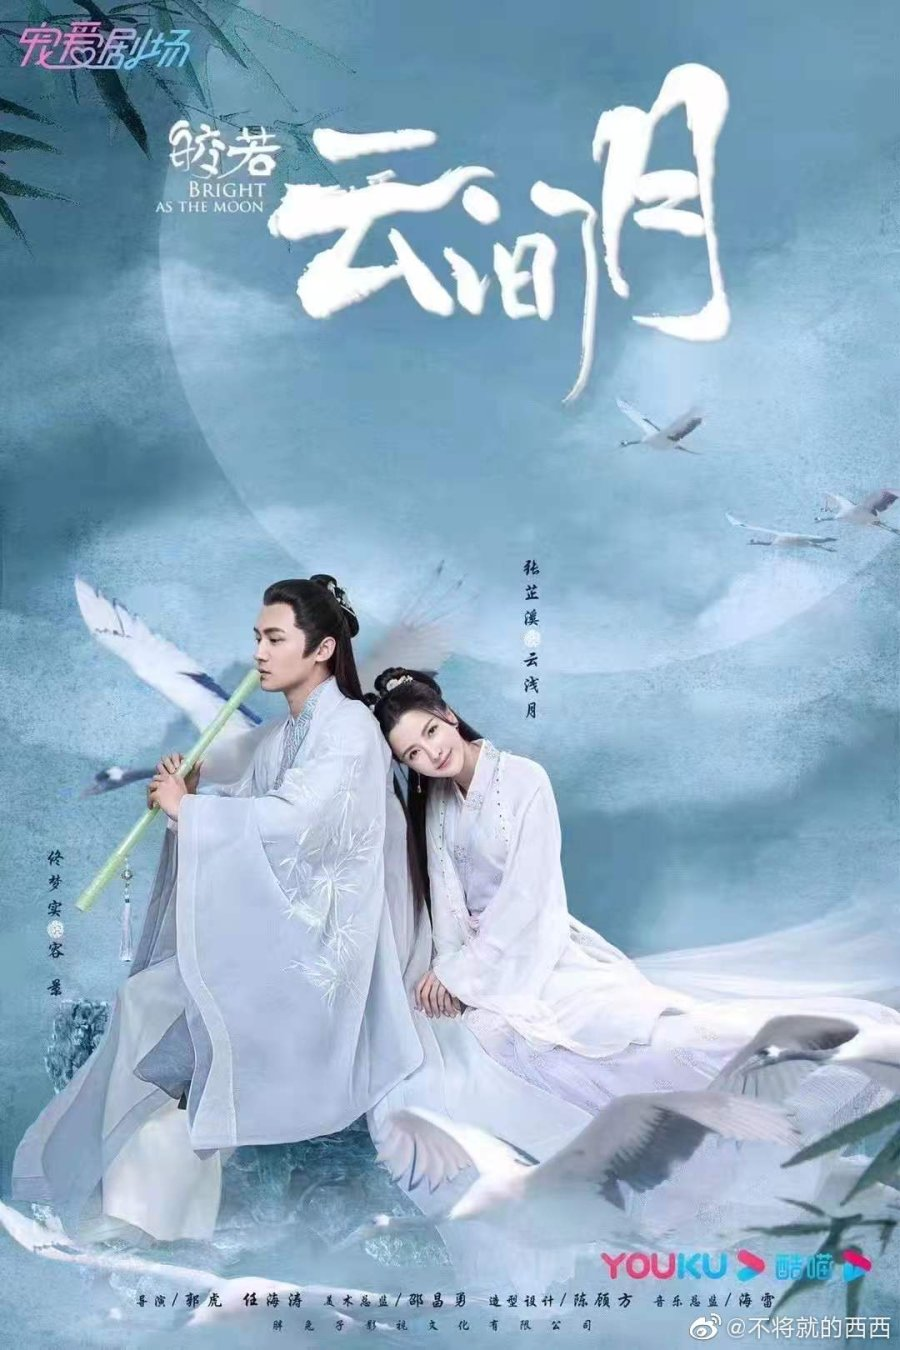 Bright As The Moon (2021) / 皎若云间月